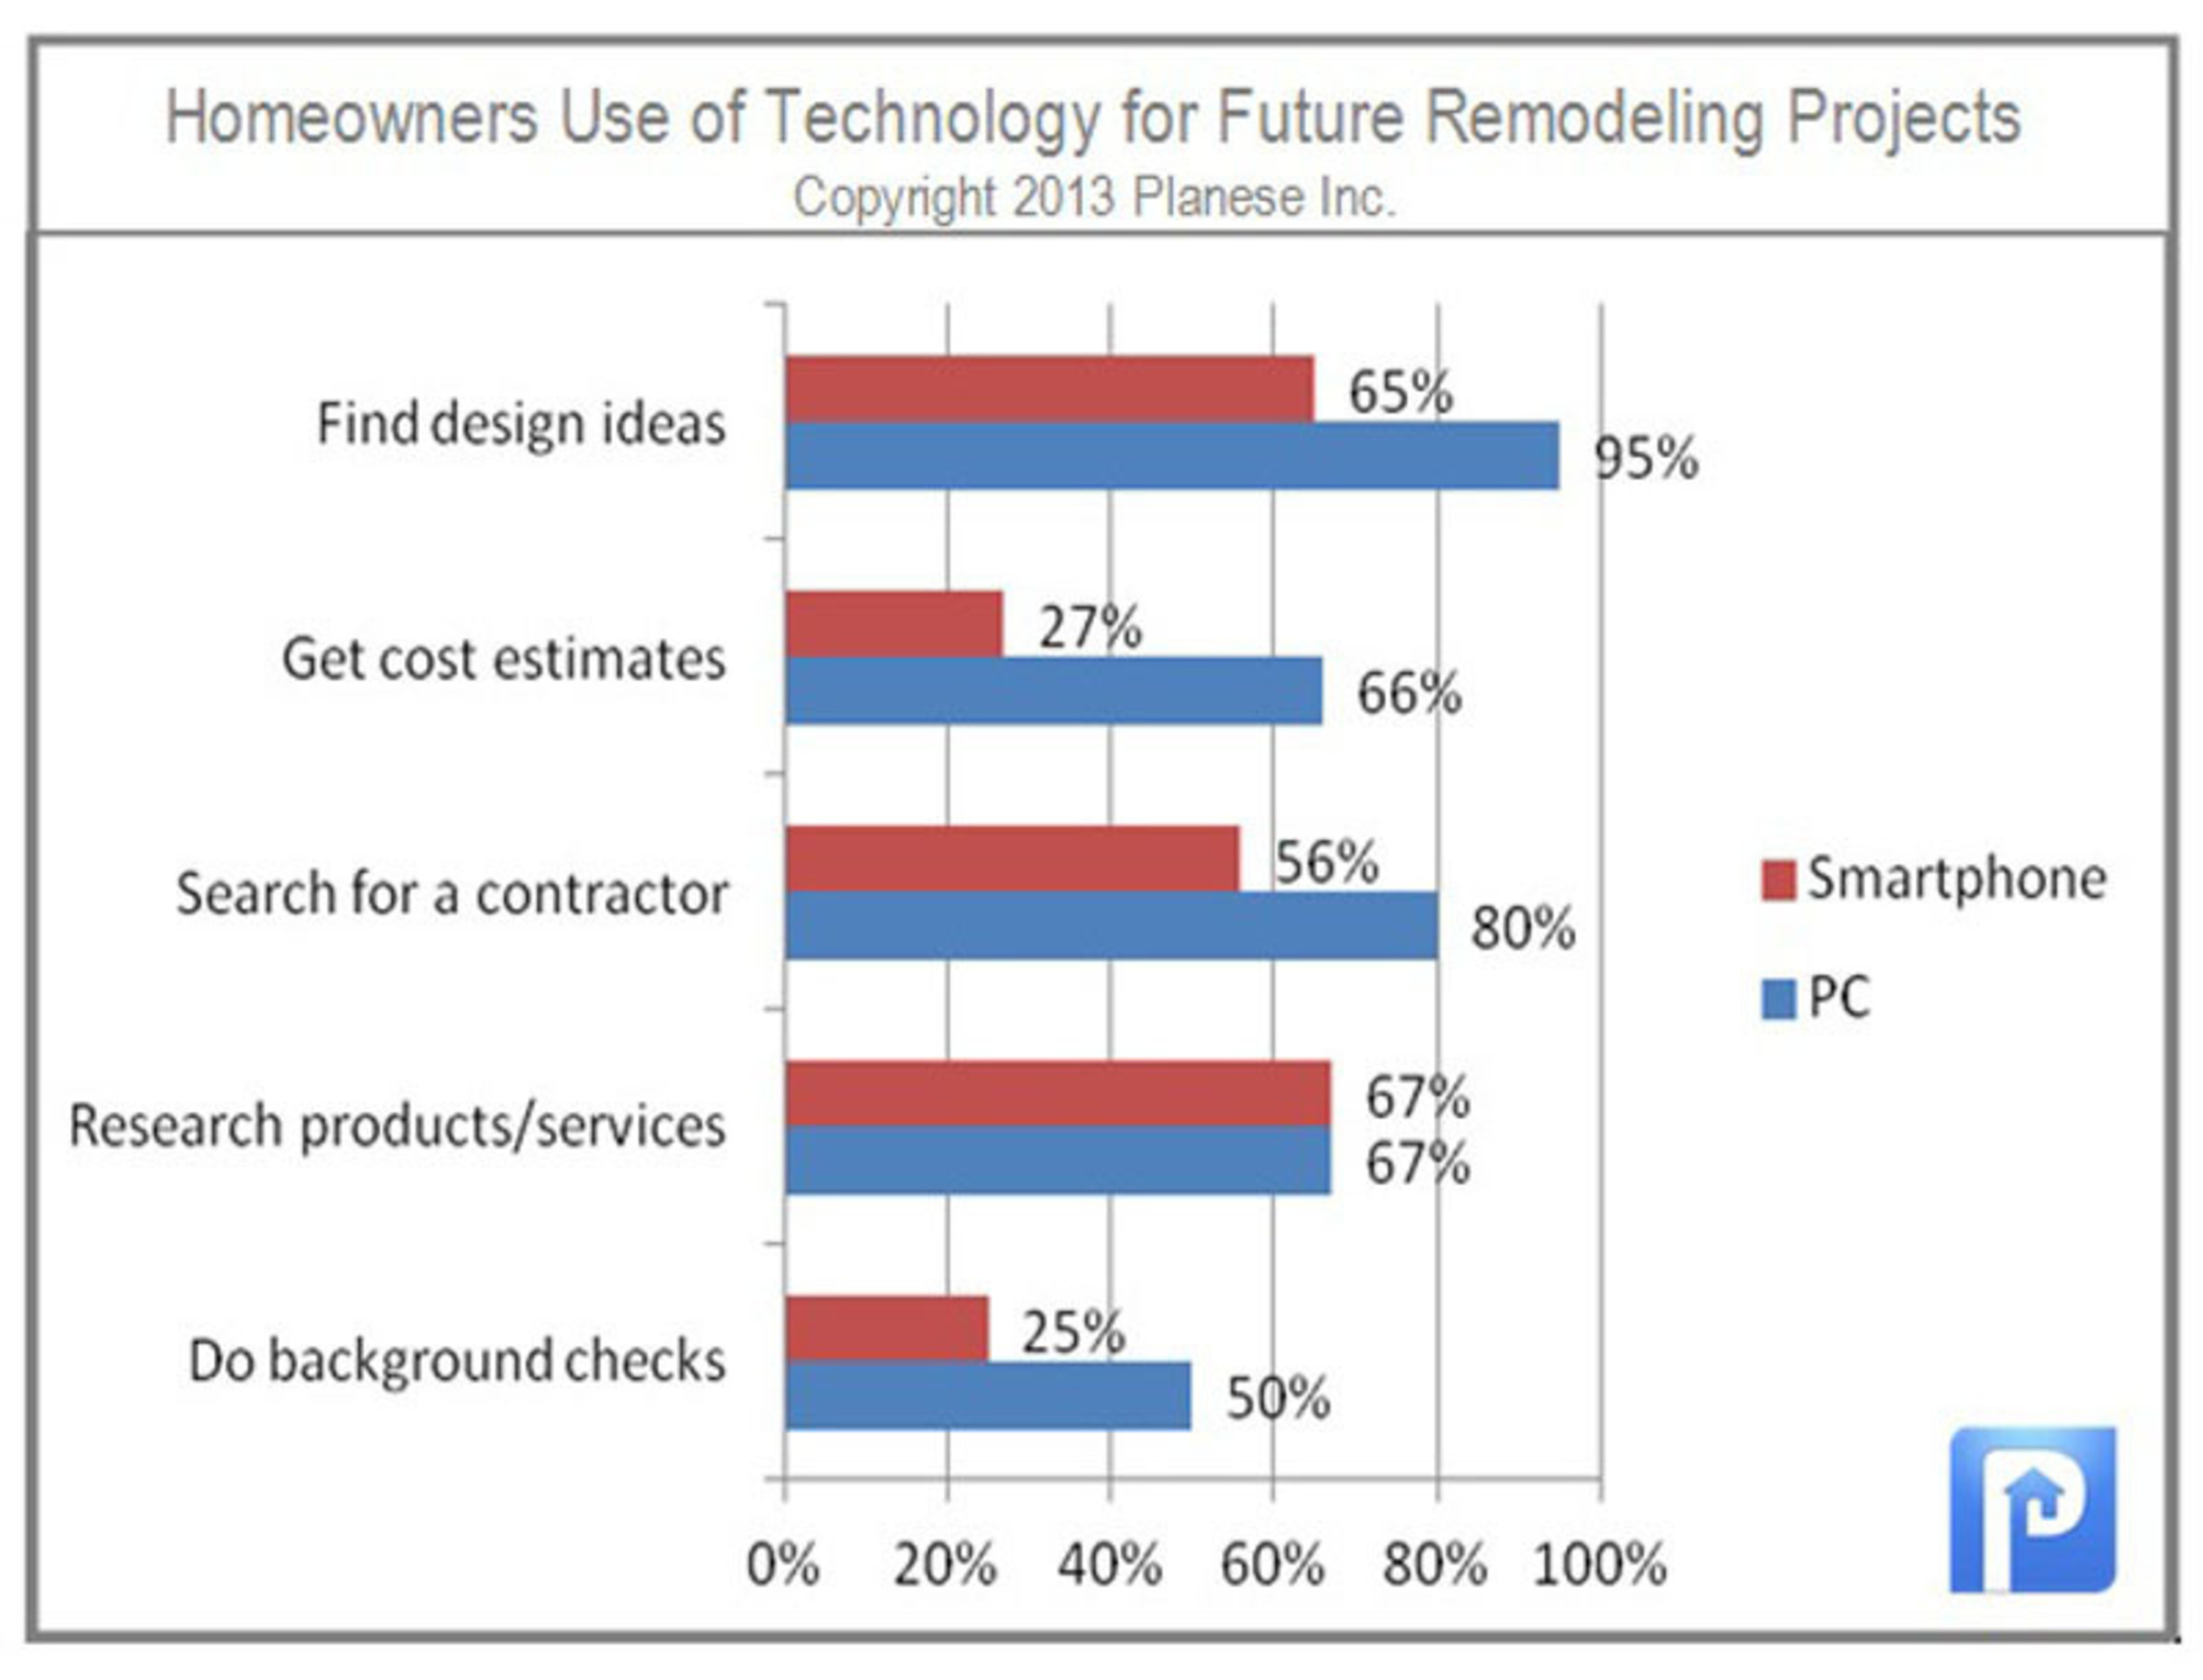 Homeowners Use of Technology for Future Remodeling Projects. (PRNewsFoto/Planese) (PRNewsFoto/PLANESE)